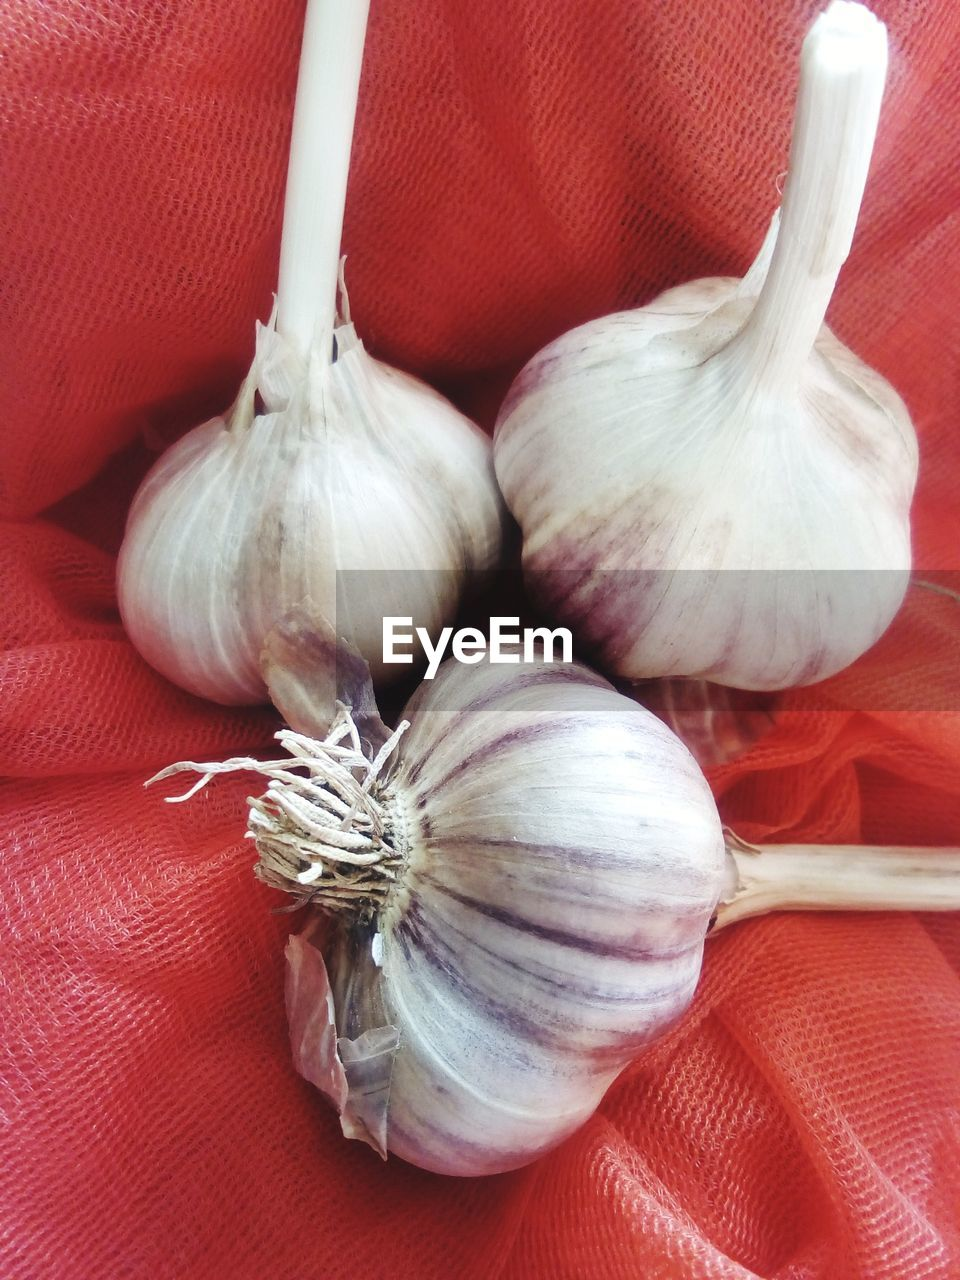 food and drink, vegetable, food, garlic, spice, ingredient, freshness, wellbeing, still life, garlic bulb, raw food, close-up, indoors, healthy eating, no people, onion, red, group of objects, high angle view, medium group of objects, garlic clove